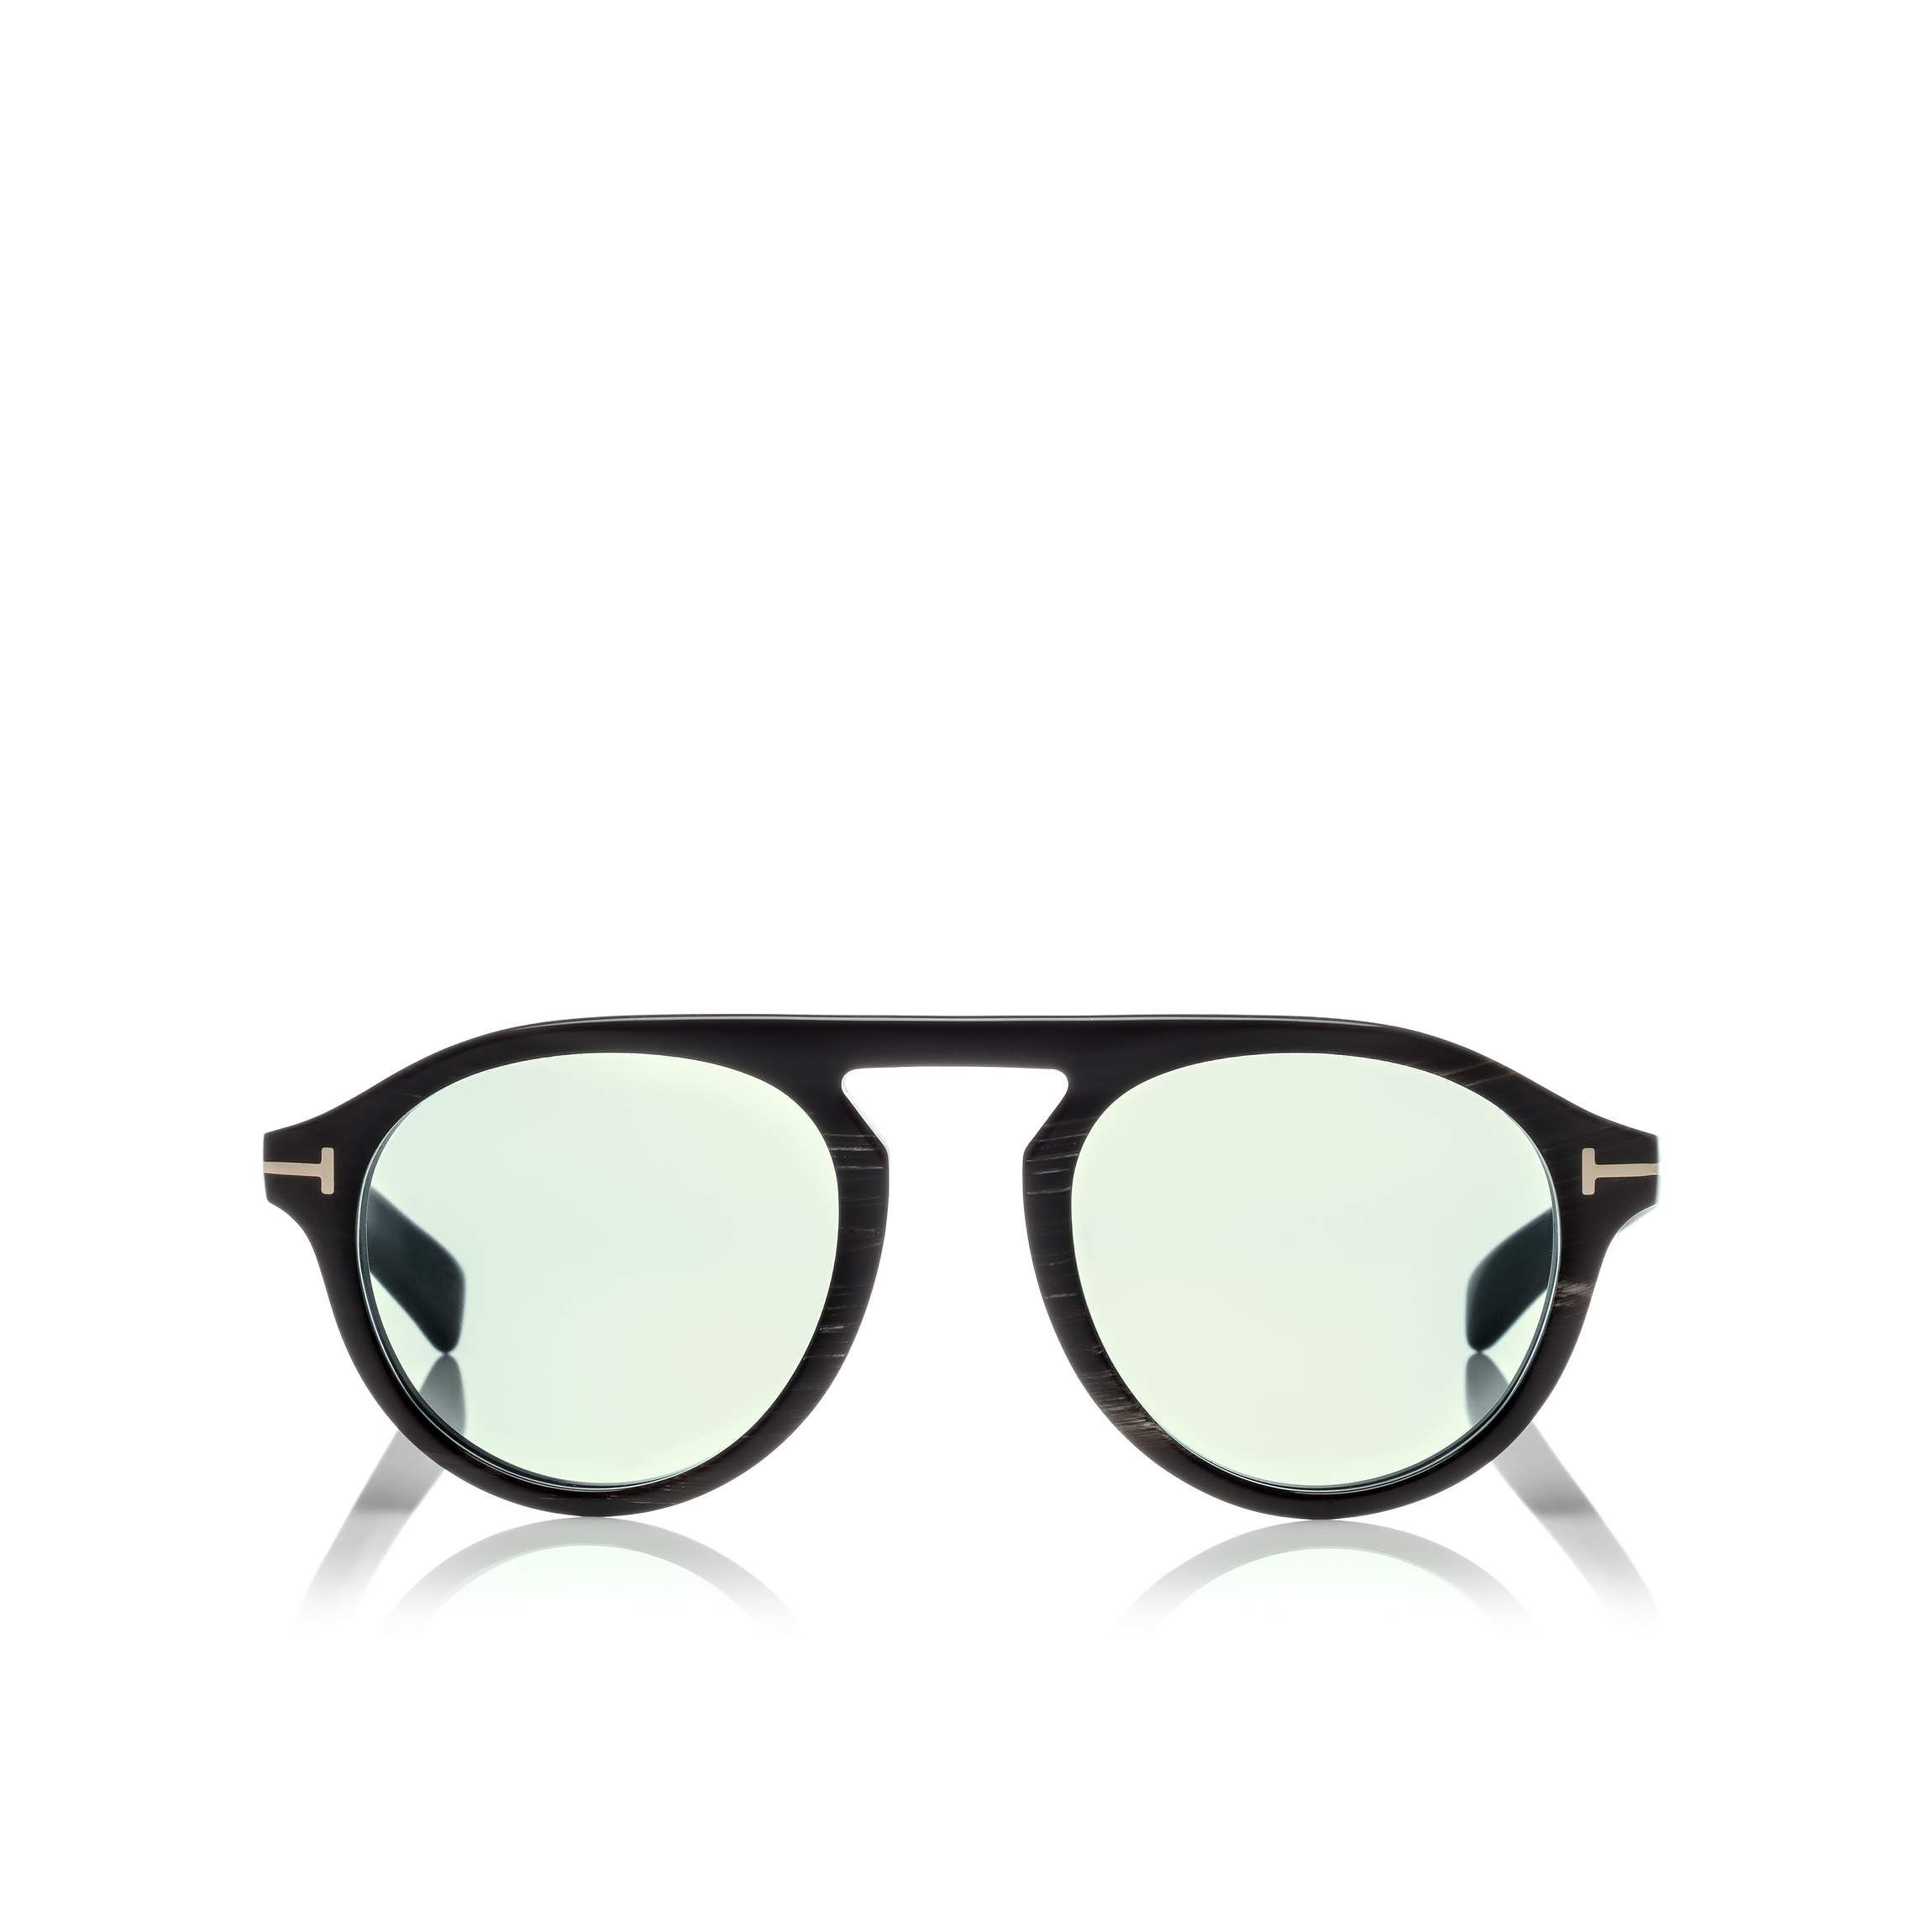 THE TOM FORD PRIVATE COLLECTION IS AN EXCLUSIVE EDITION OF SUNGLASSES AND  OPTICAL FRAMES BASED ON e6561823d820